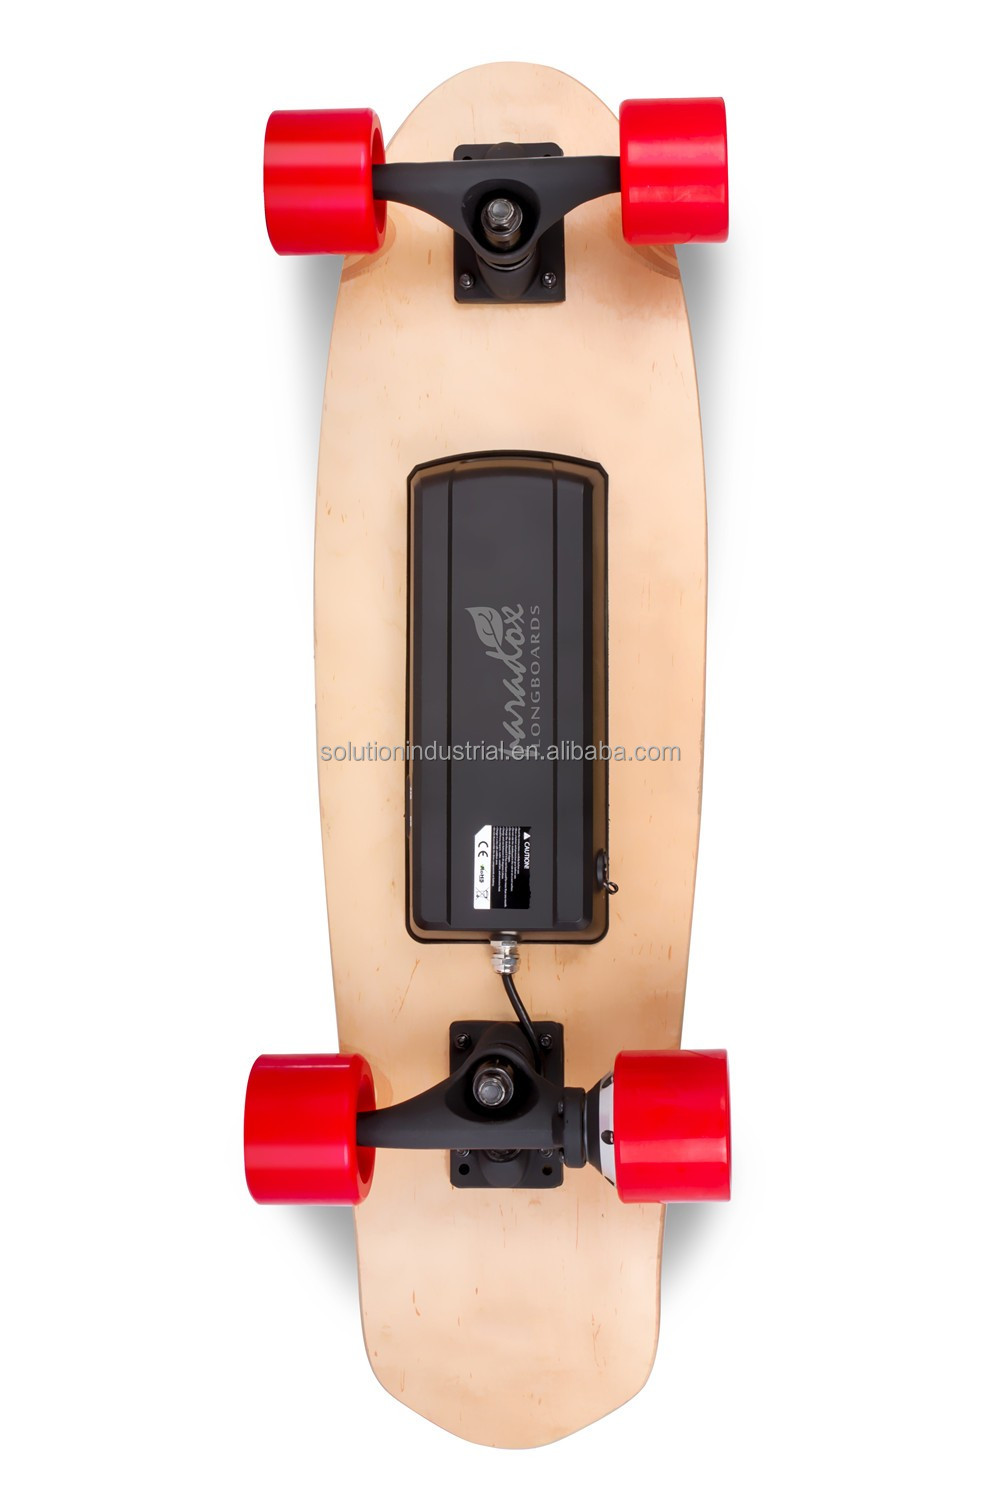 2016 New Trendy Products Paradox 400W Electric Ccooter Motor Electric Skateboard For Kids